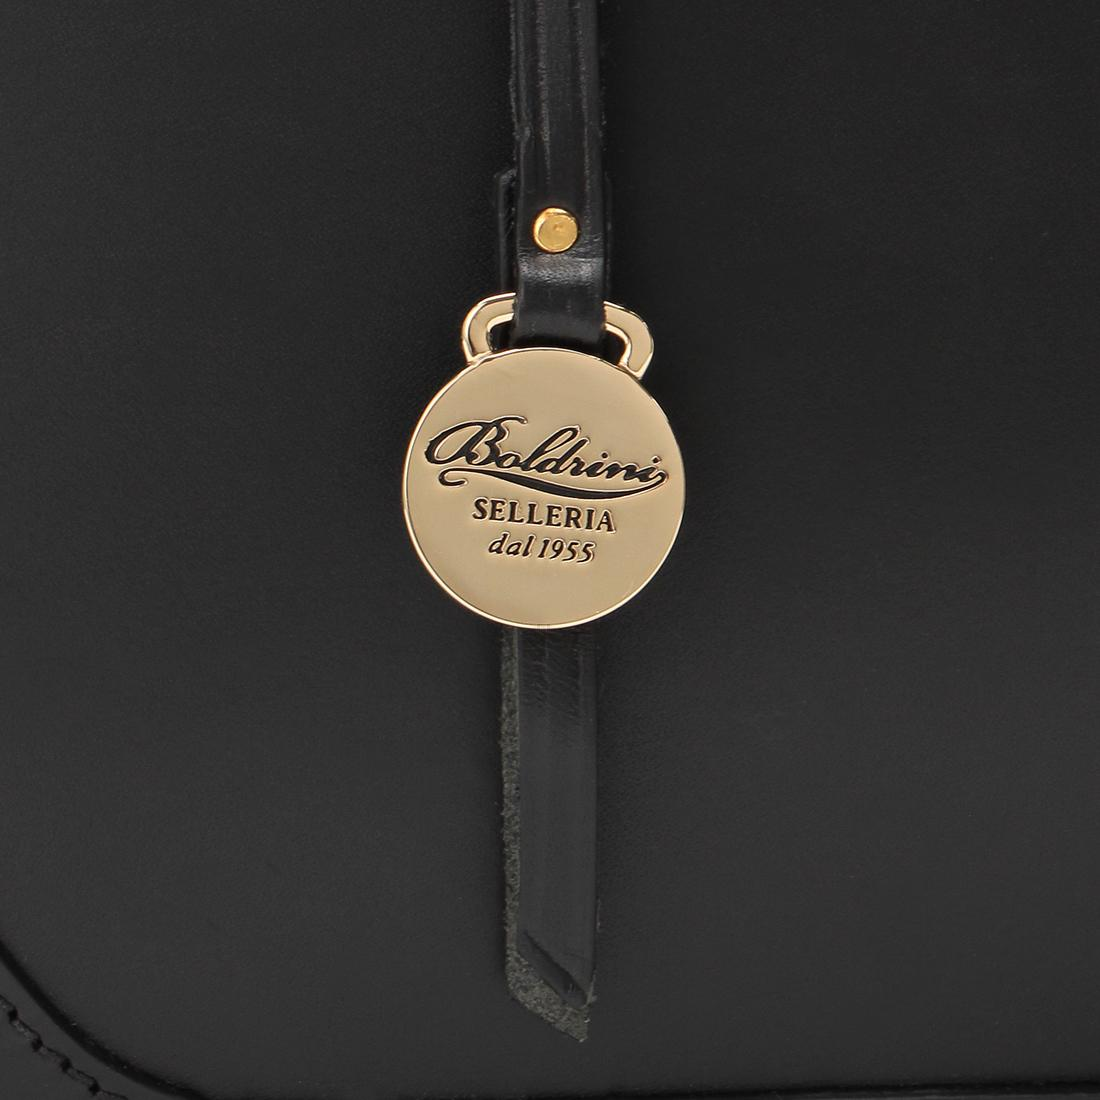 Boldrini Selleria Leather Briefcase: Black